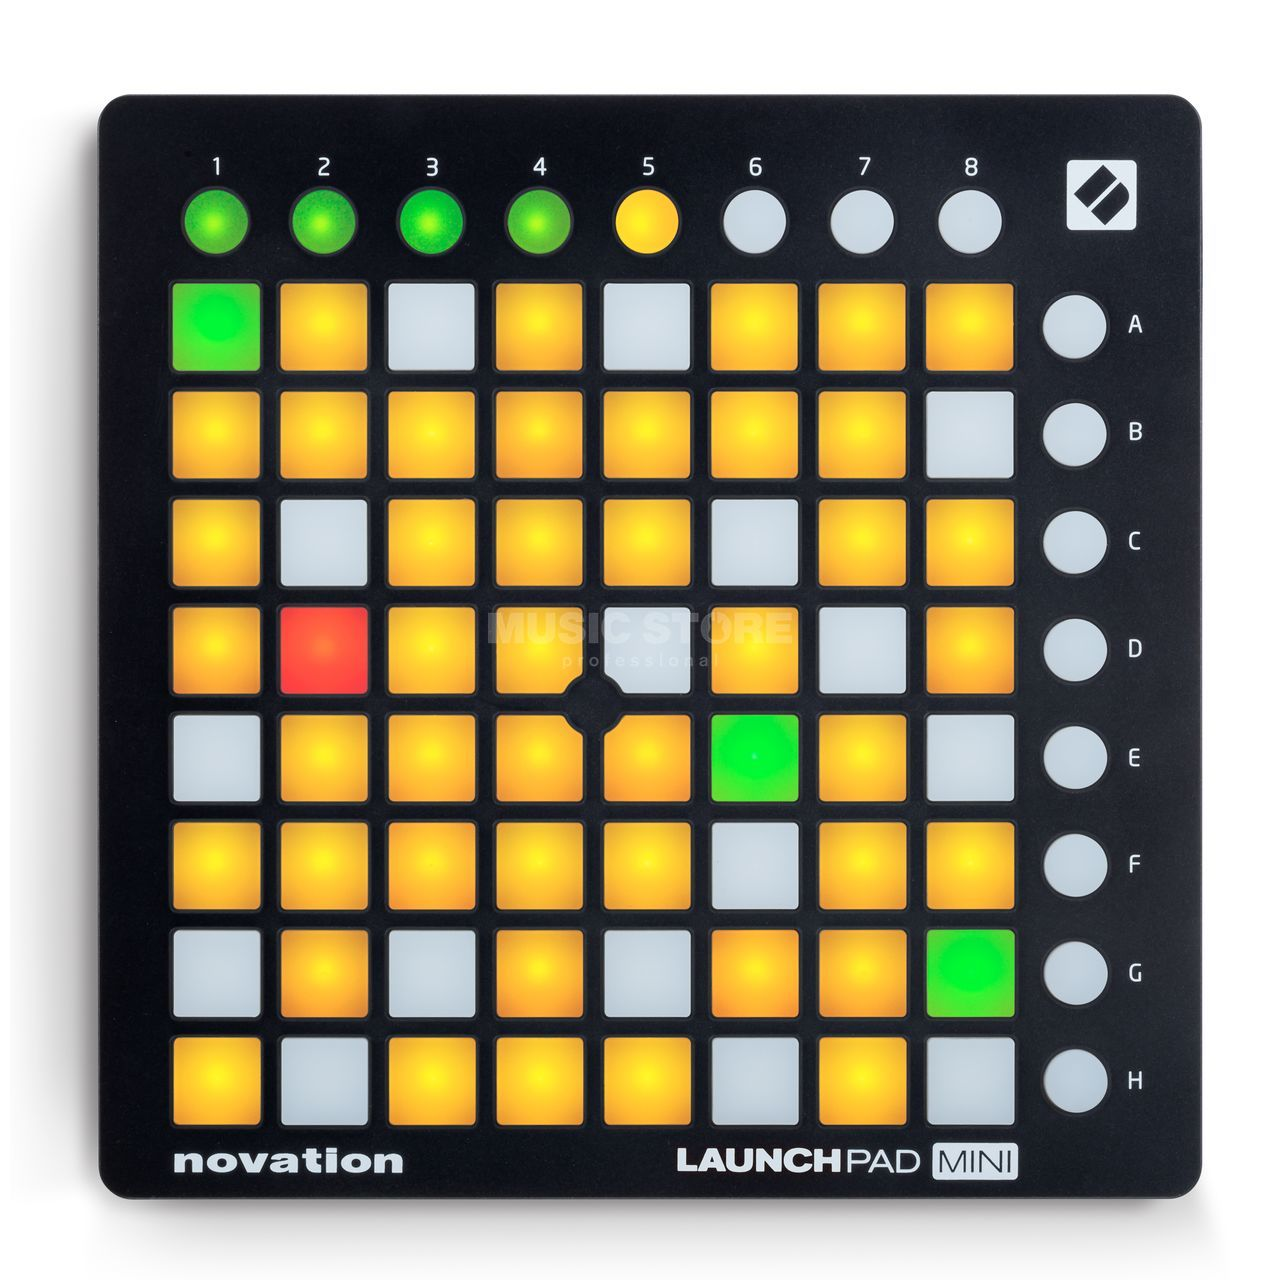 novation launchpad mini mk2 dv247 en gb. Black Bedroom Furniture Sets. Home Design Ideas